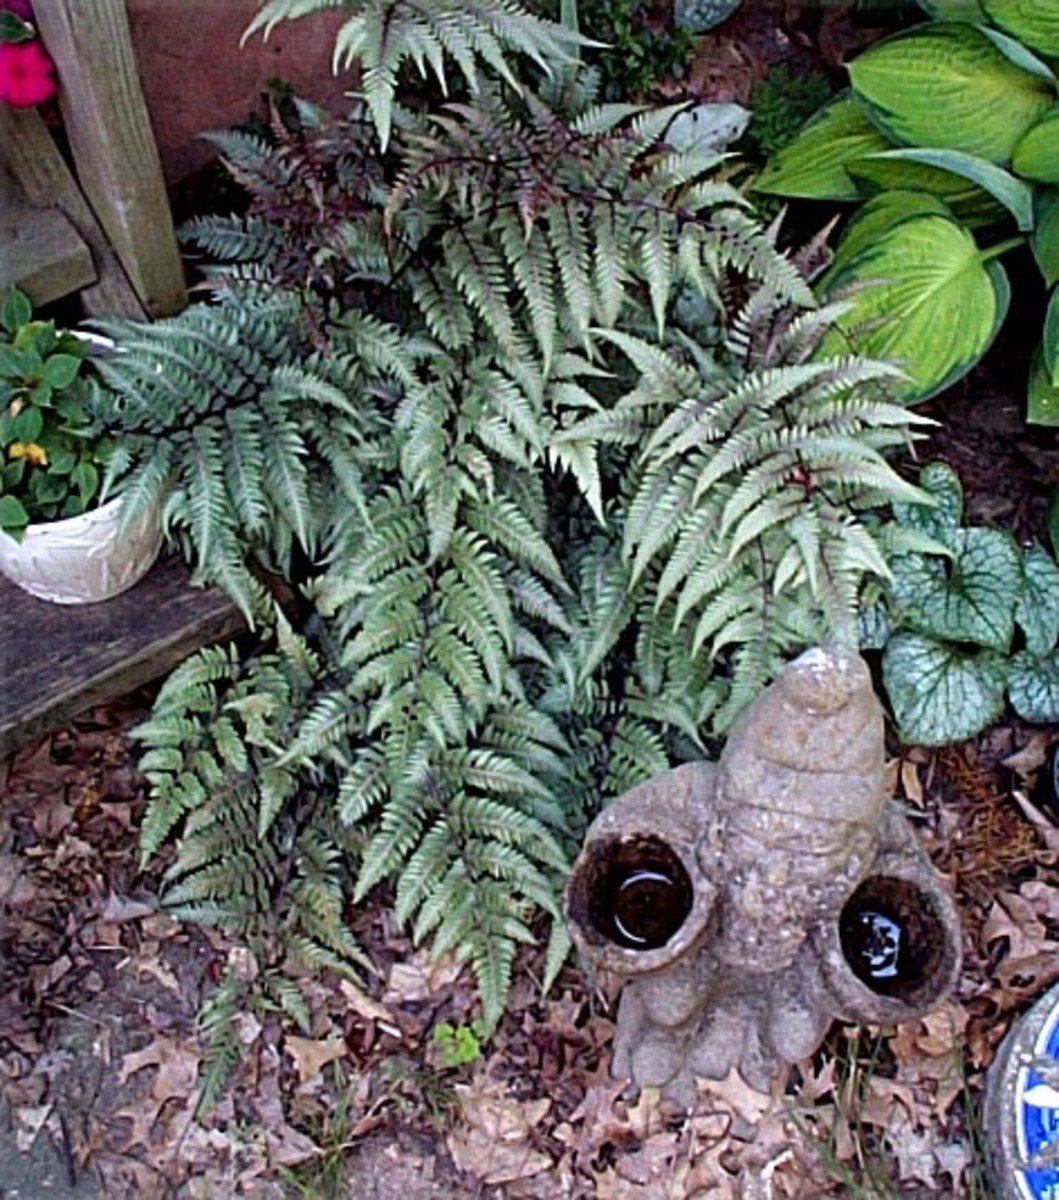 Japanese Painted Fern - Loves moisture and shade